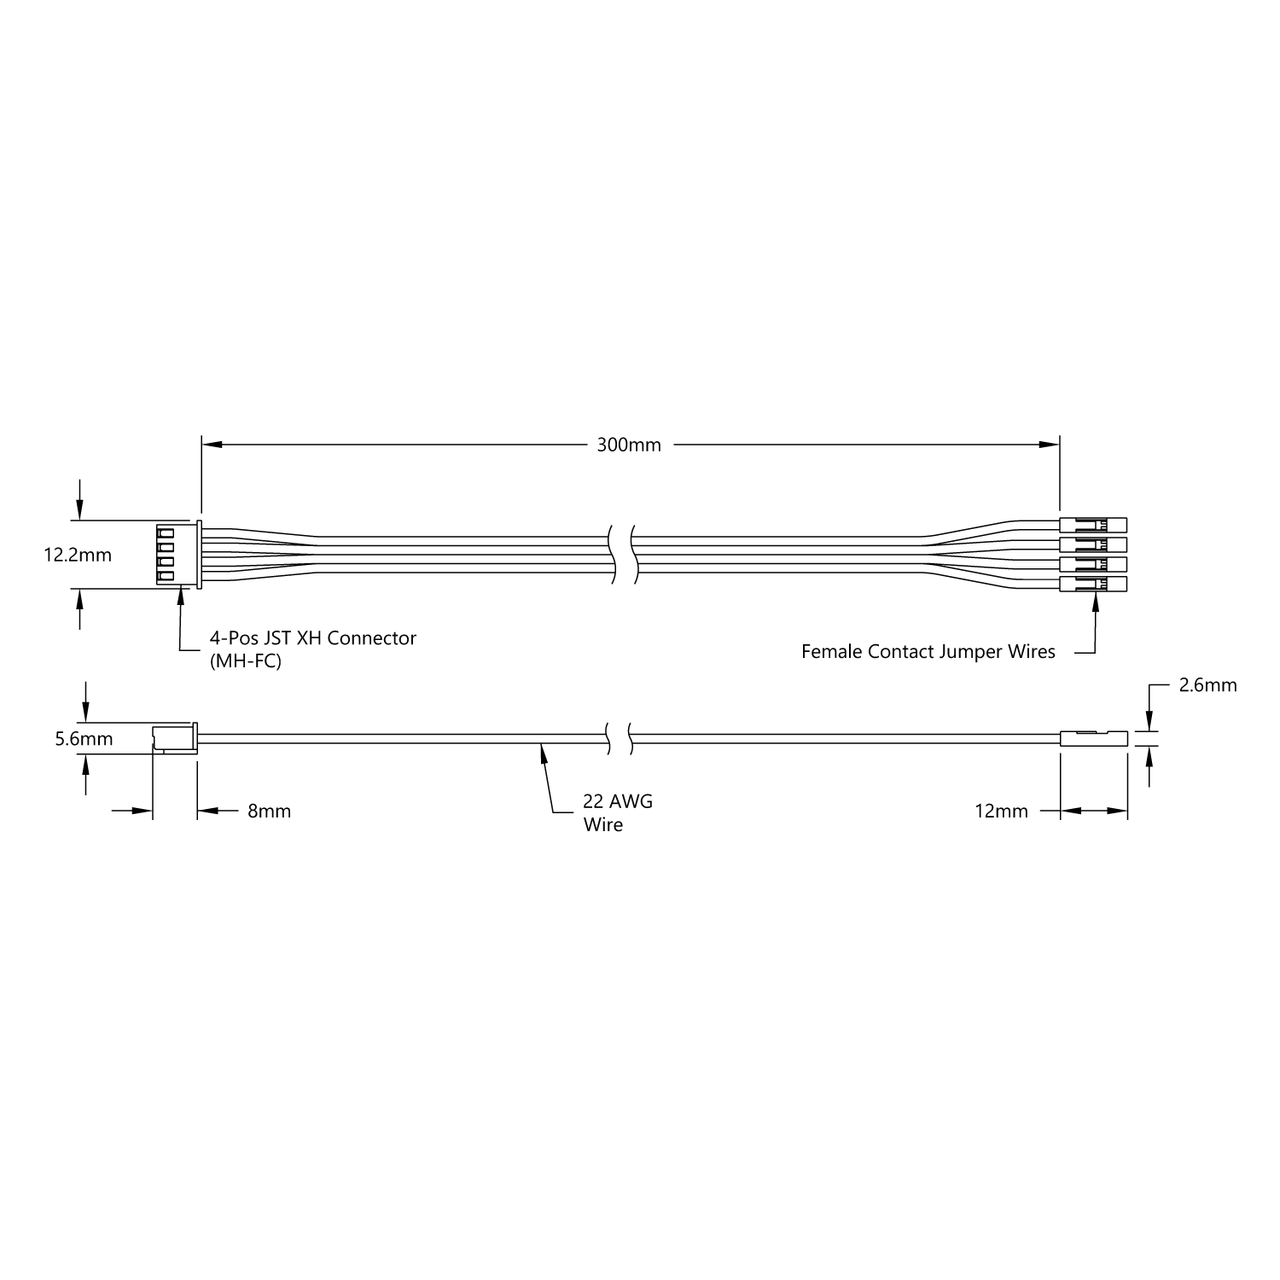 small resolution of  3801 0919 0300 schematic